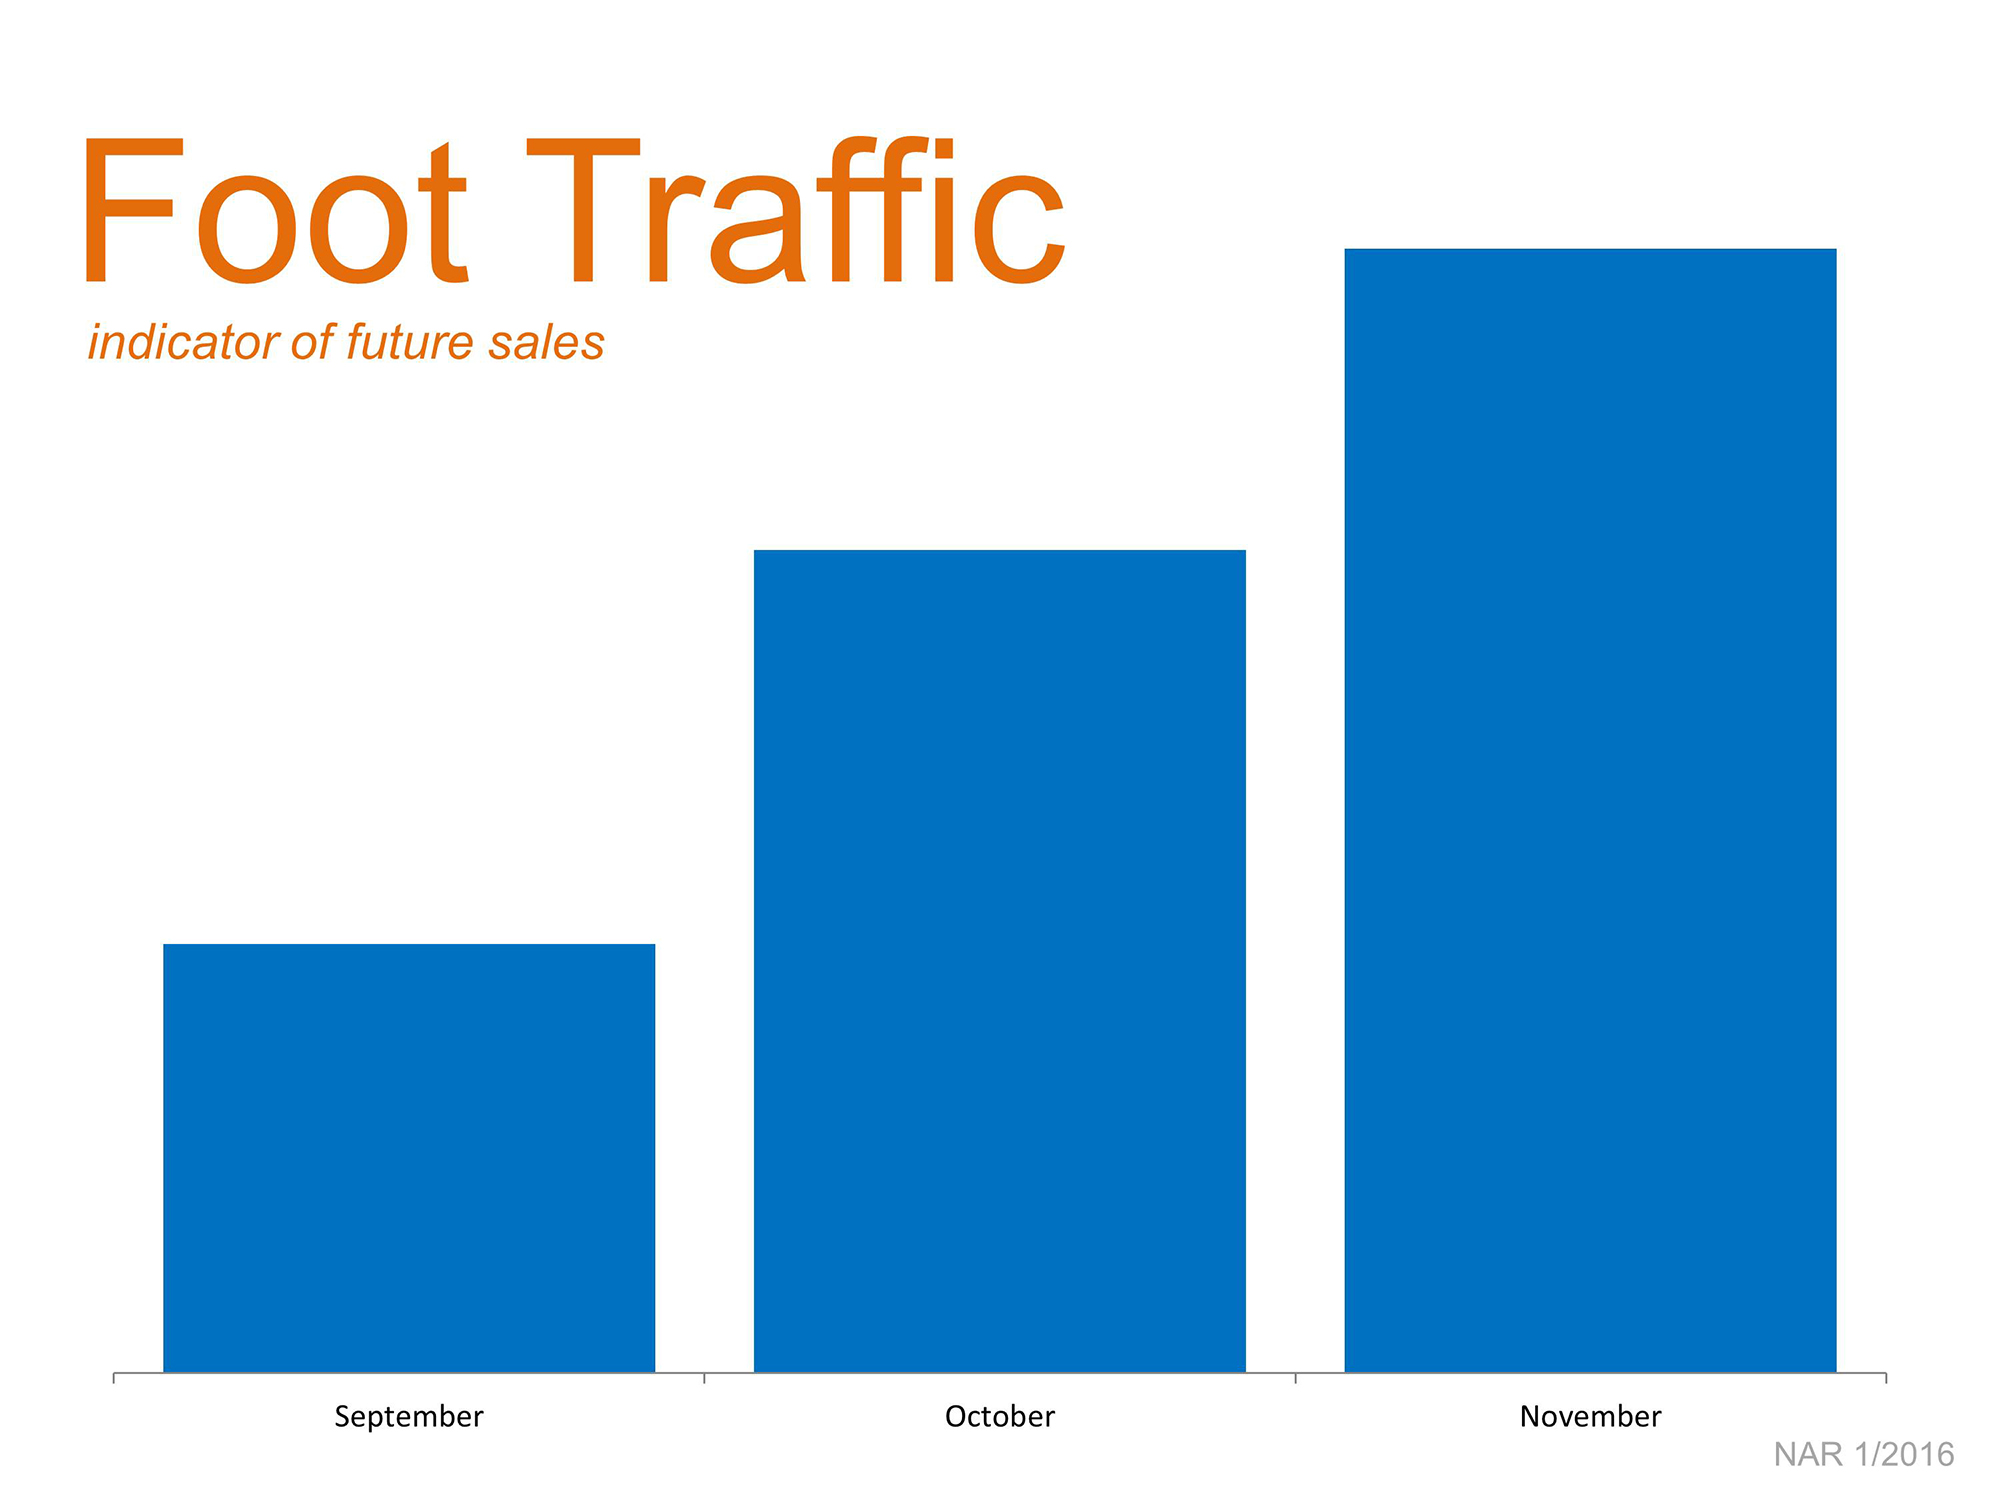 Foot Traffic Growing | Simplifying The Market